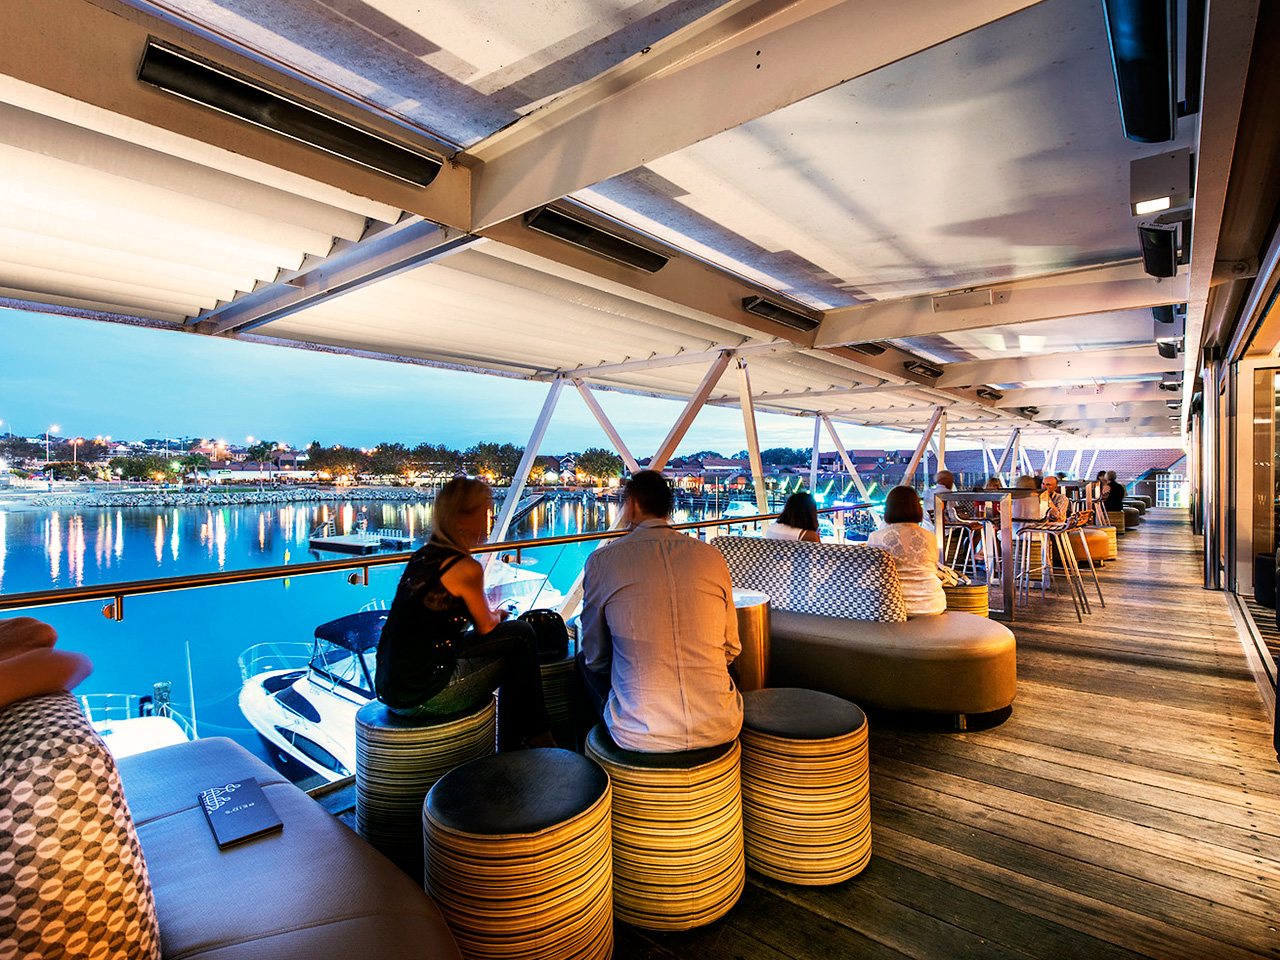 Guests Enjoying The Ocean View In Dusk In The Function Room's Terrace